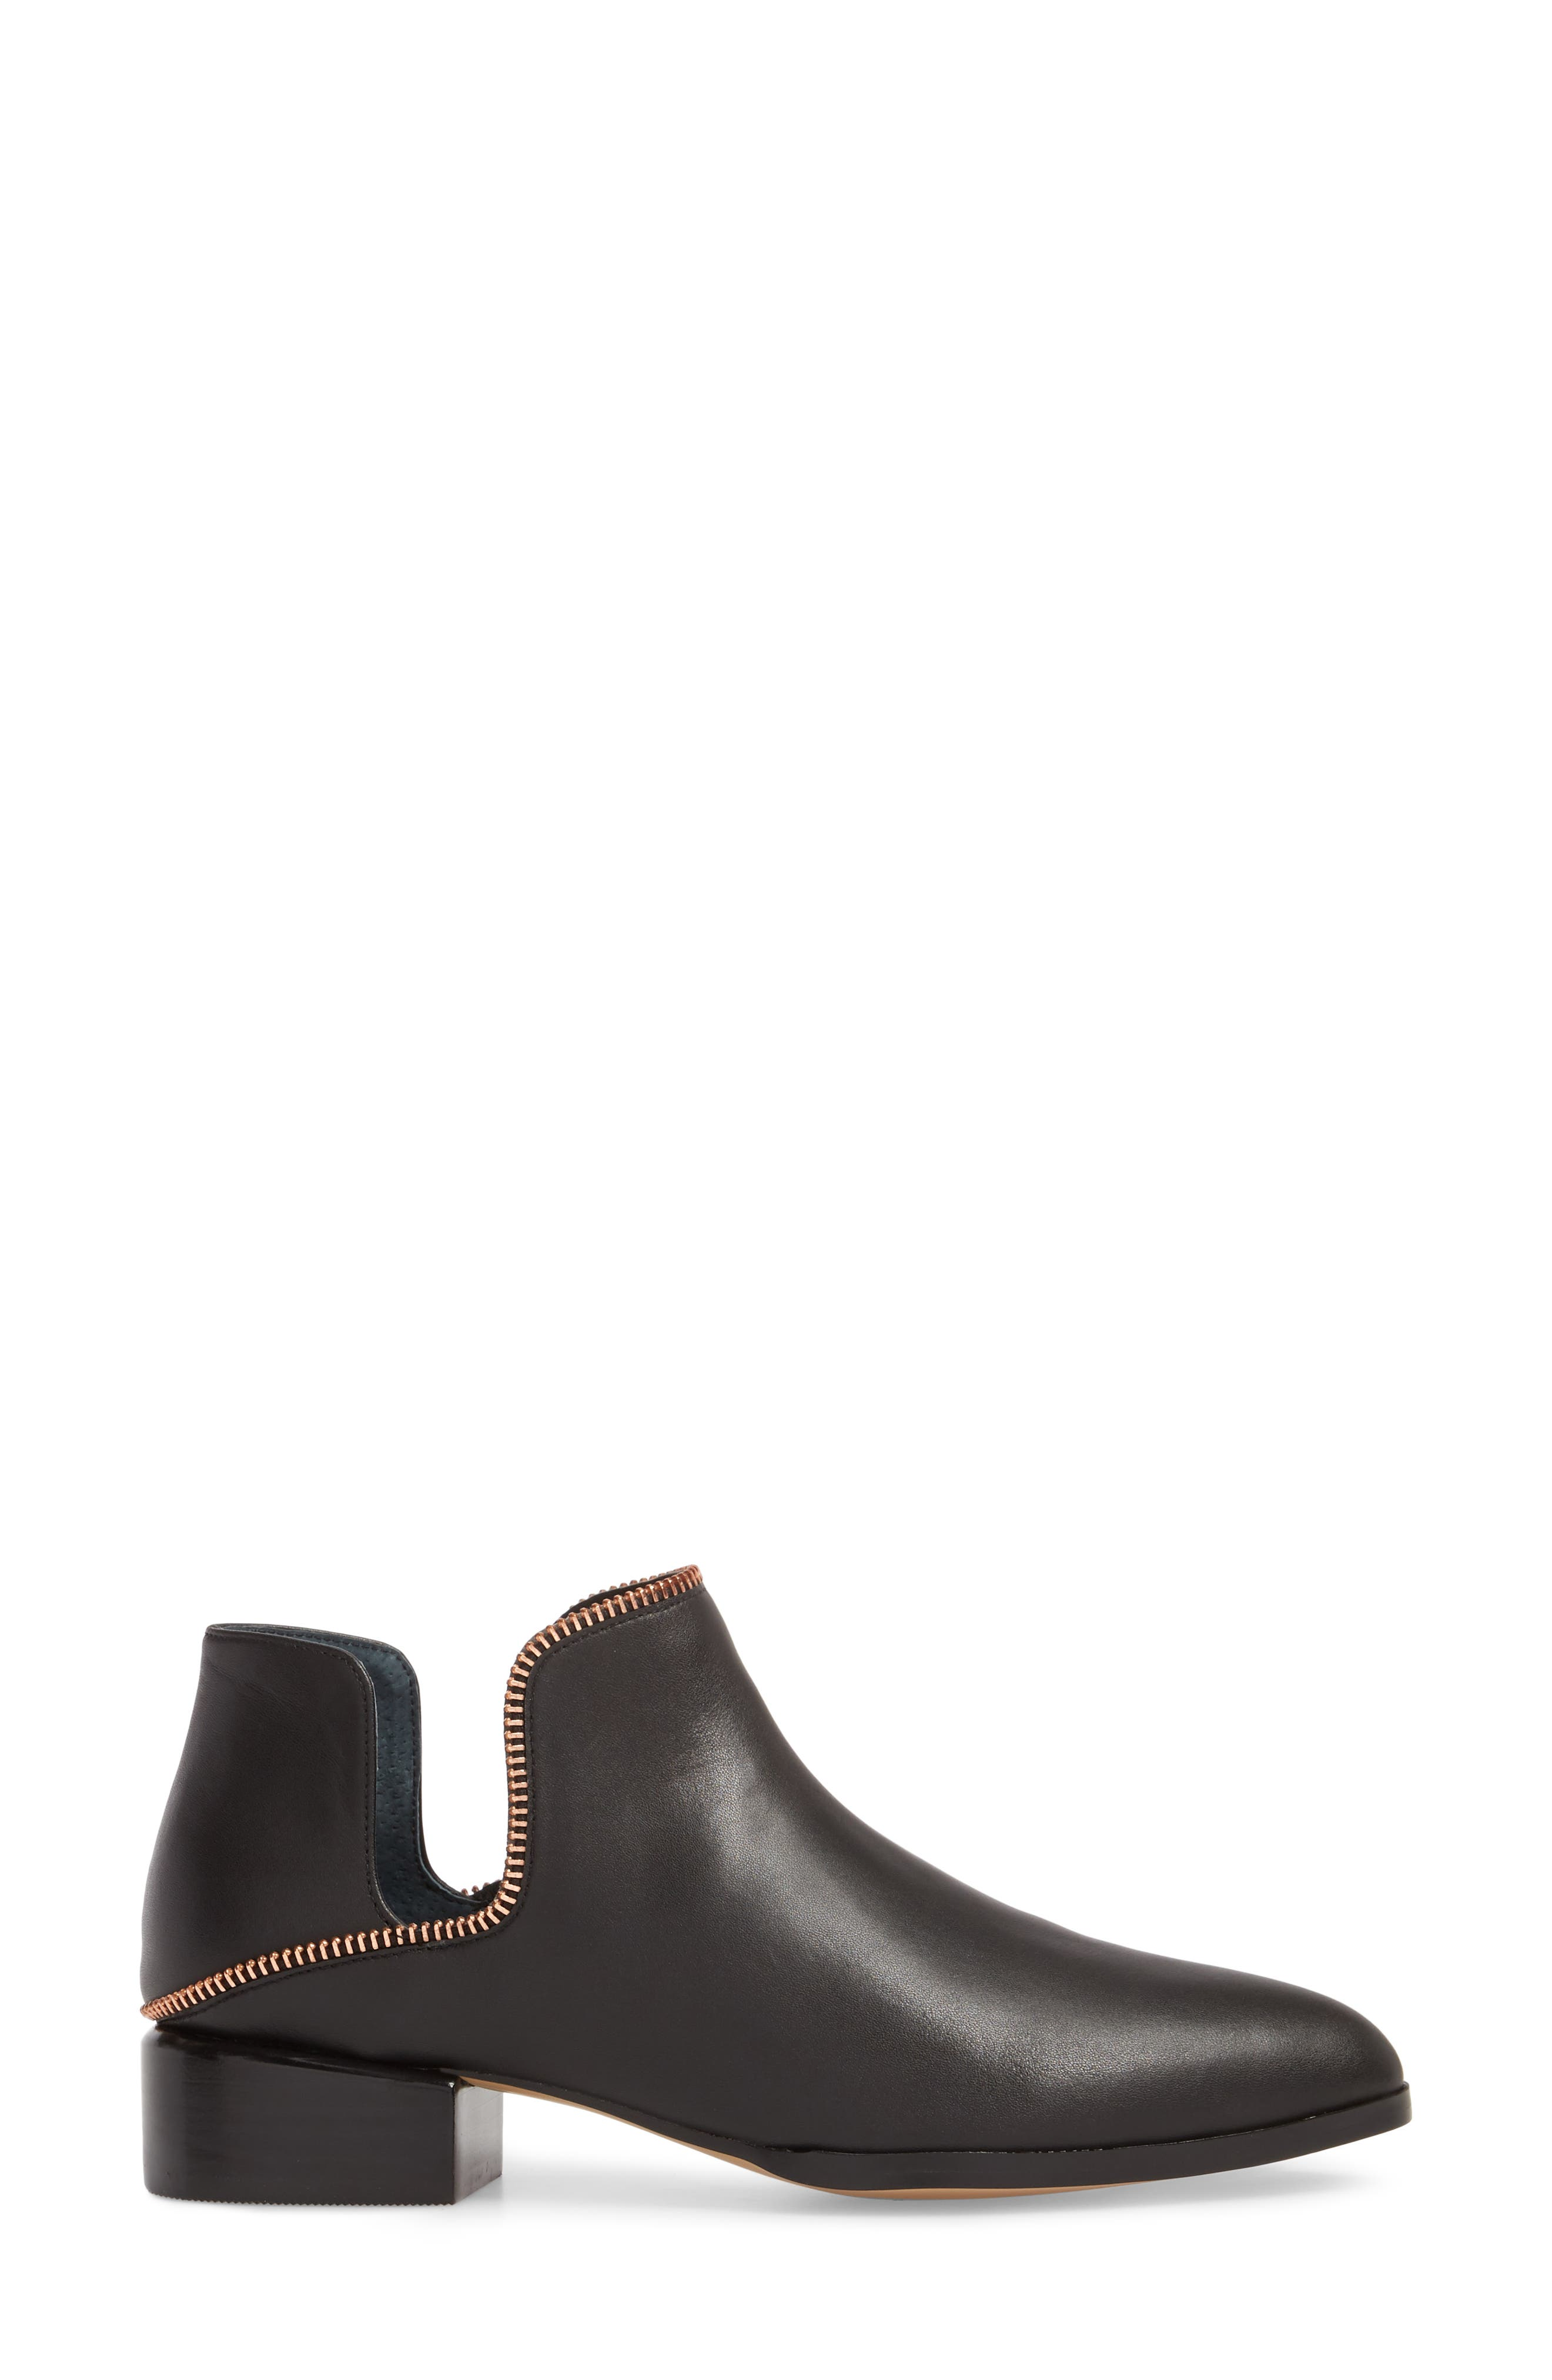 Piper Bootie,                             Alternate thumbnail 3, color,                             Black Leather/ Rosegold